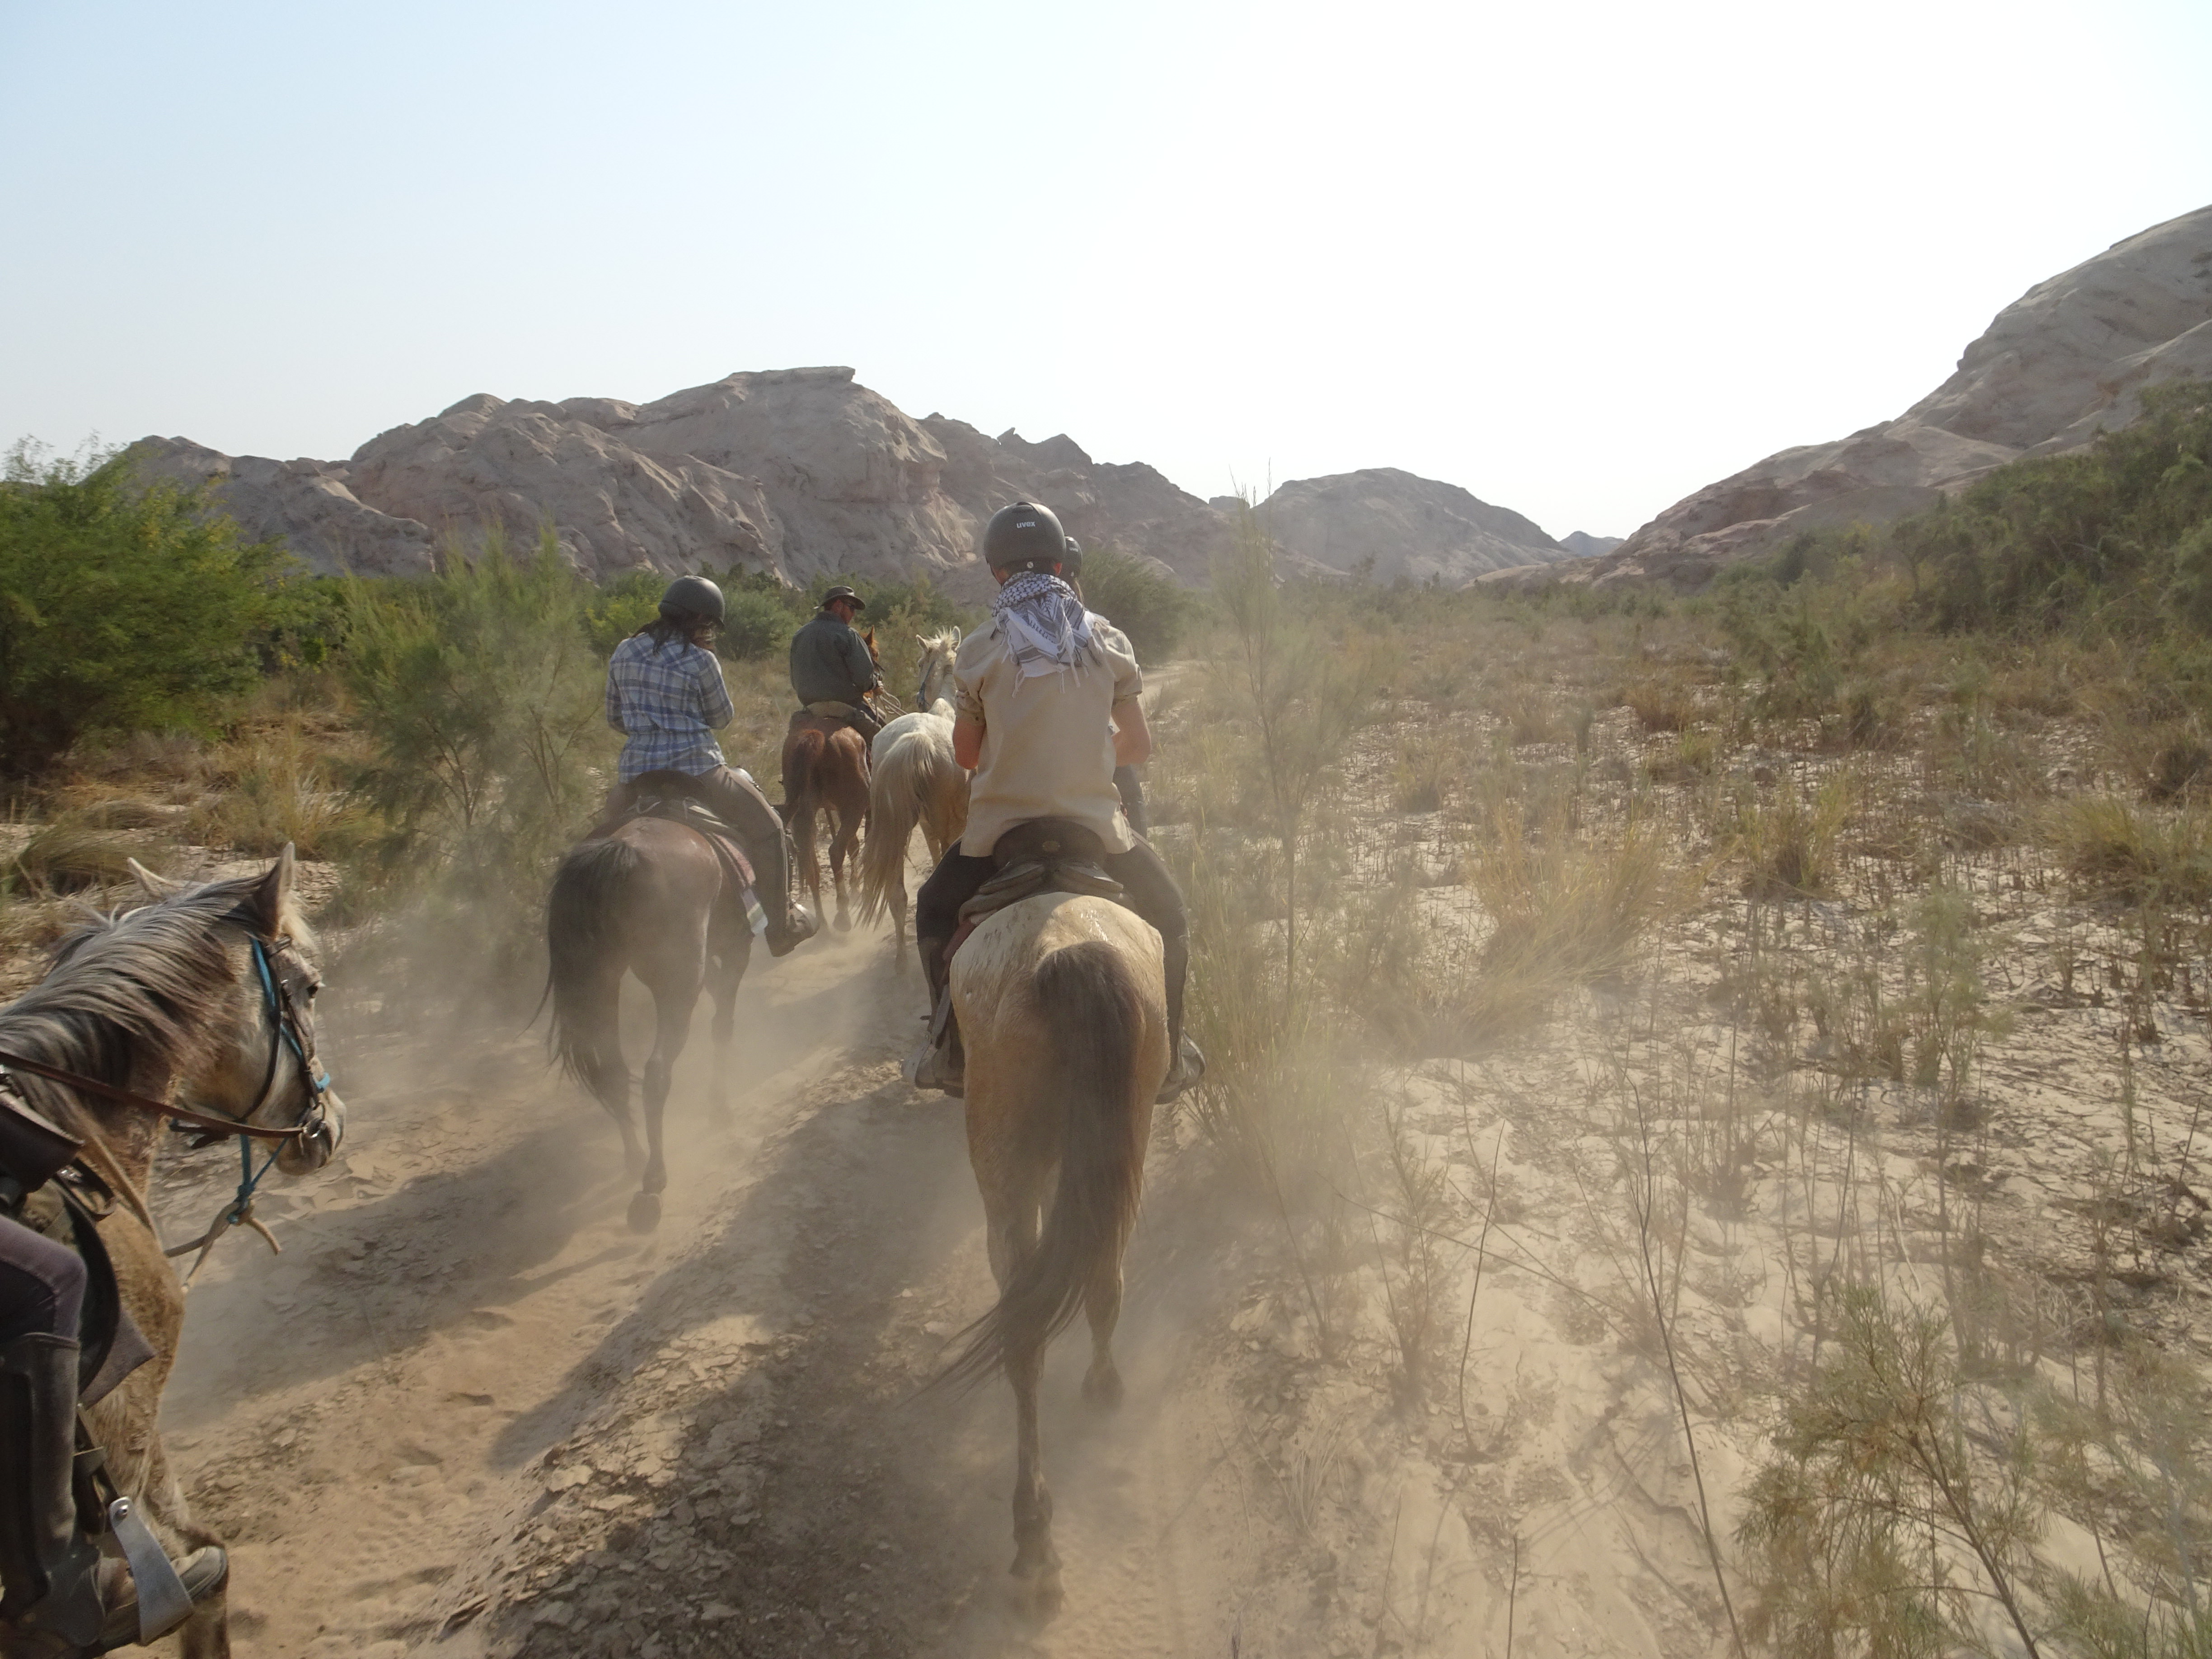 PIC 16 Riding up the Swakop River